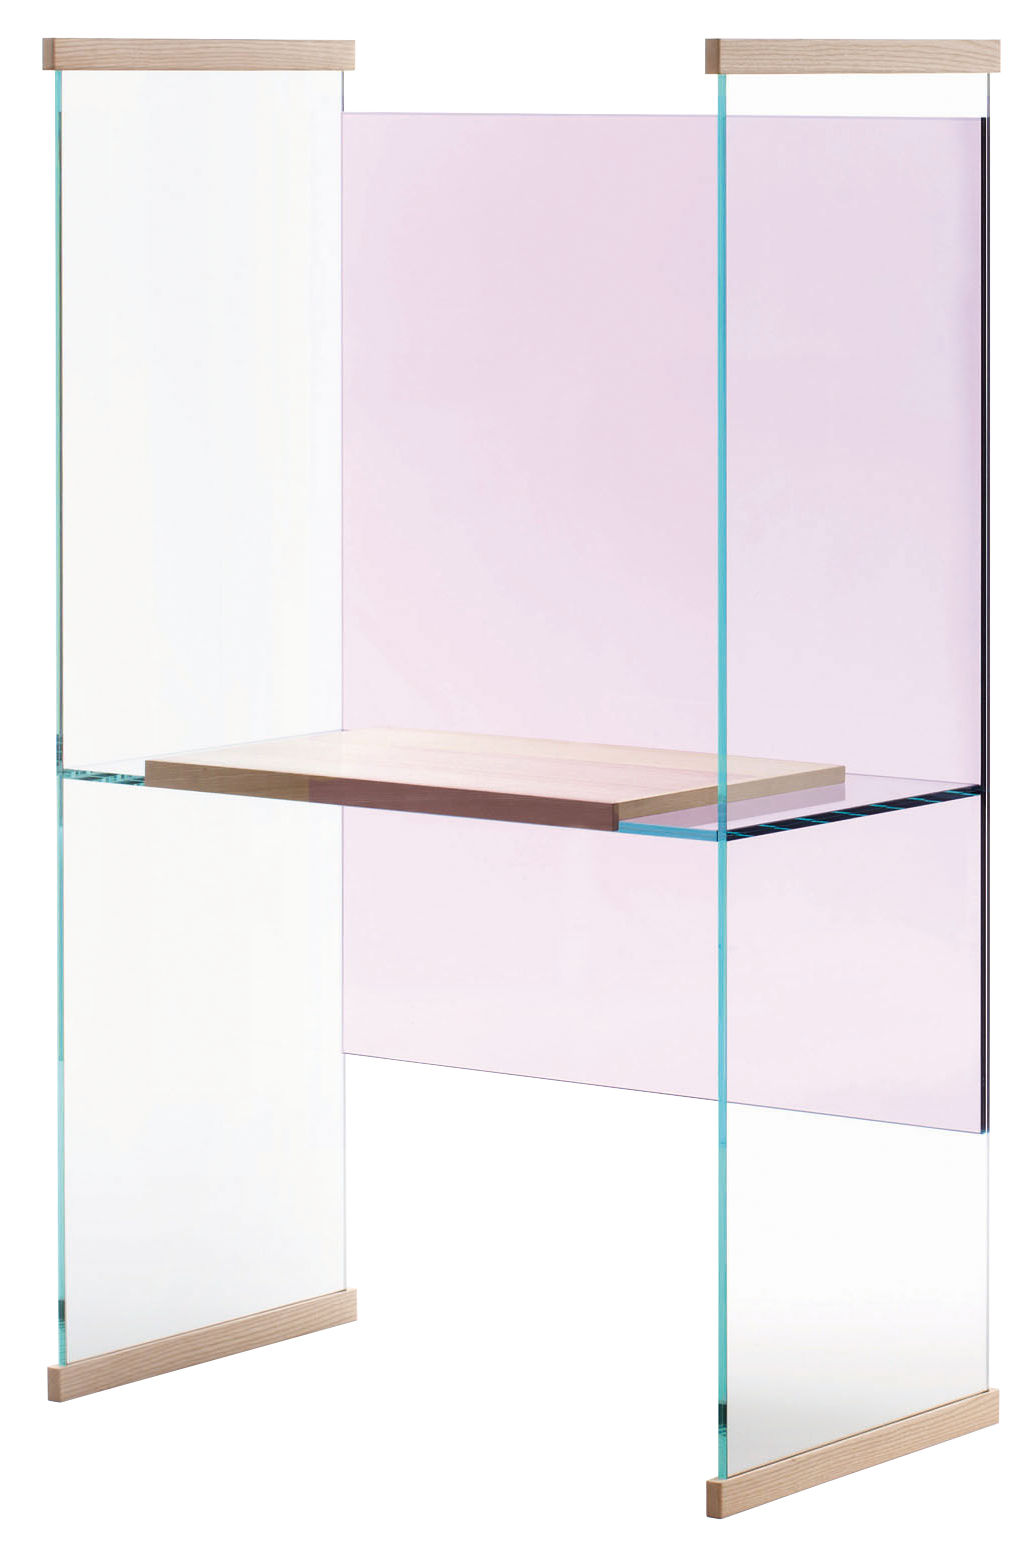 Furniture - Office Furniture - Diapositive Desk by Glas Italia - Back lilas - Top and sides transparent - Ashwood, Glass